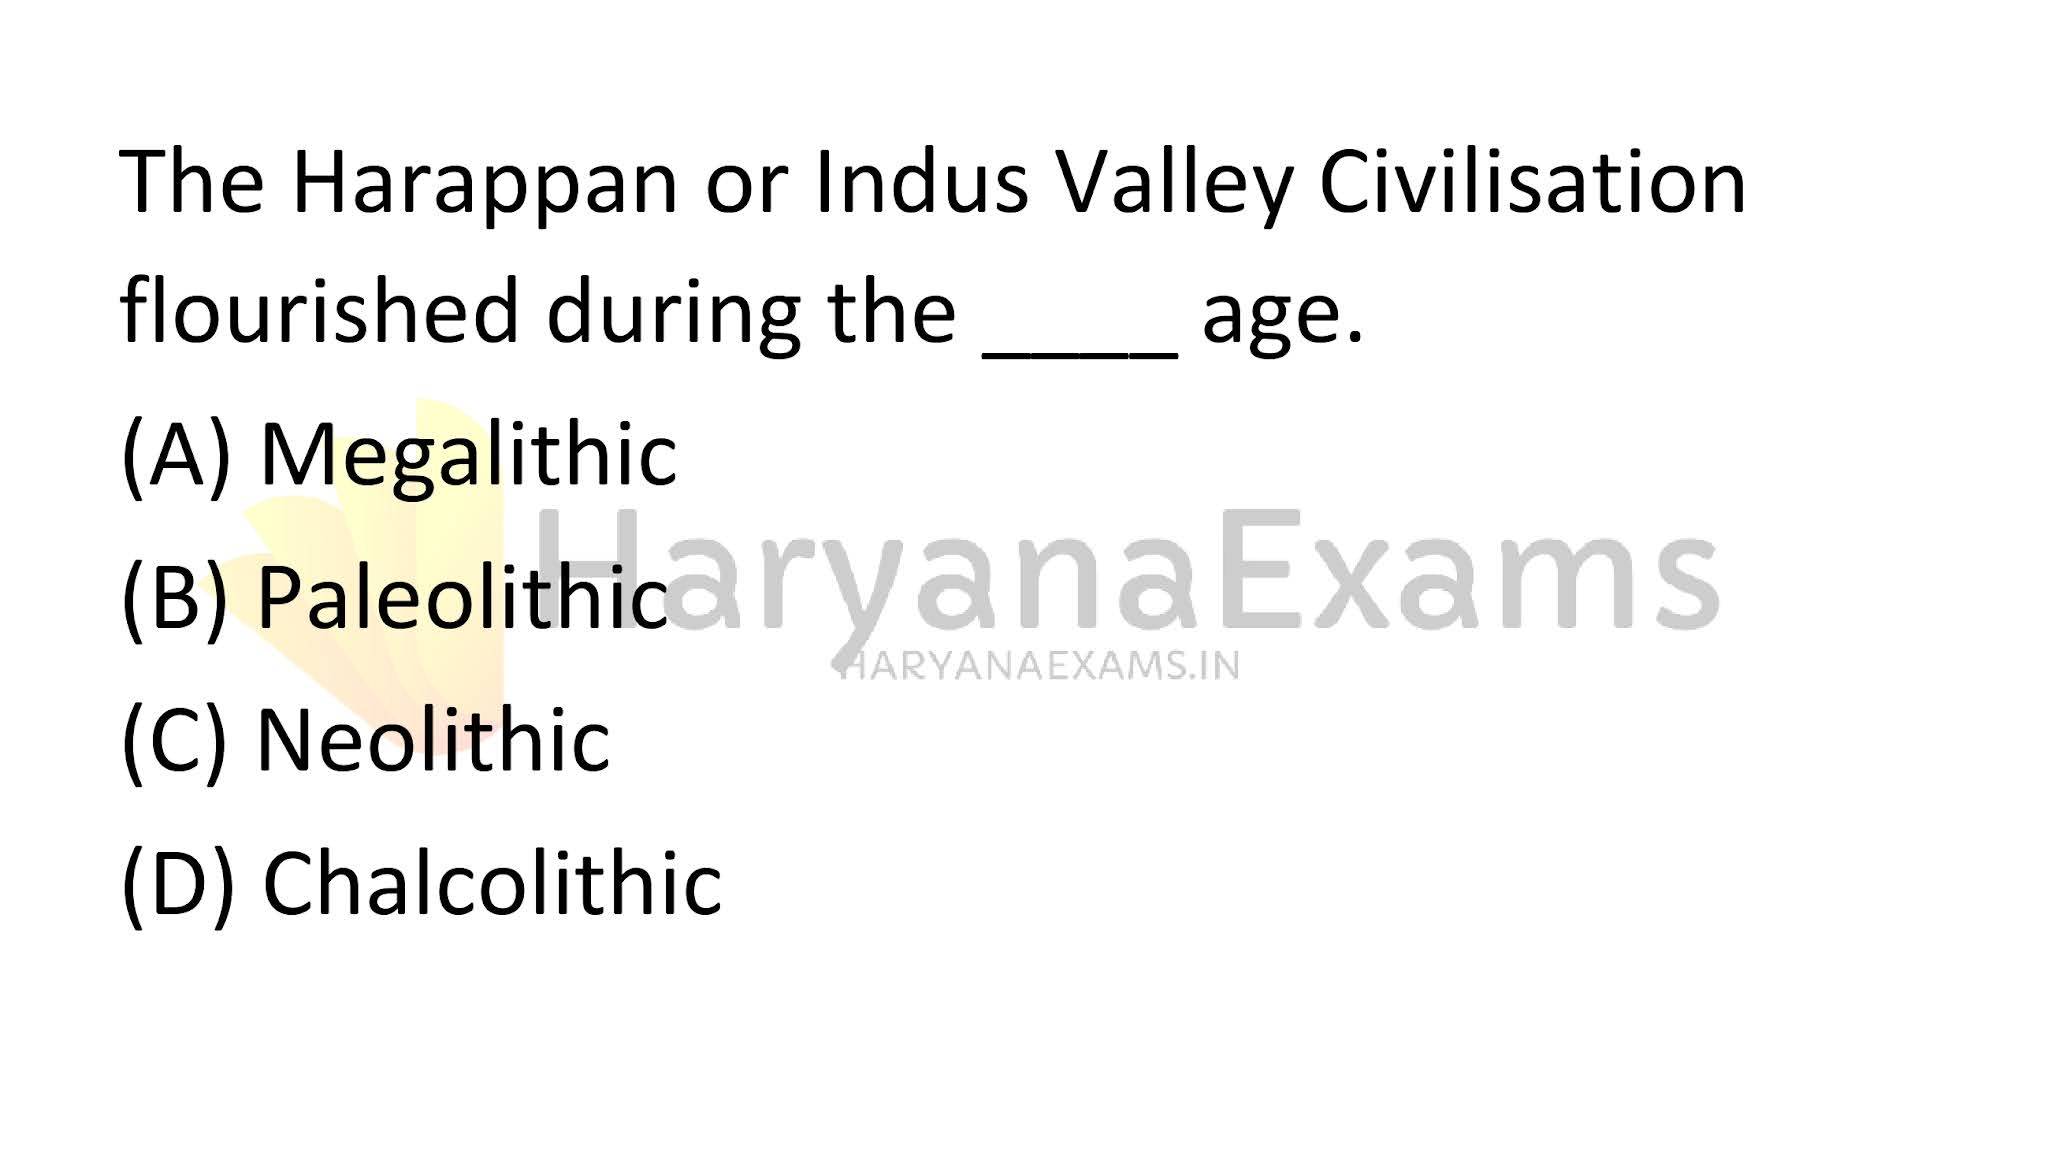 The Harappan or Indus Valley Civilisation flourished during the ____ age.